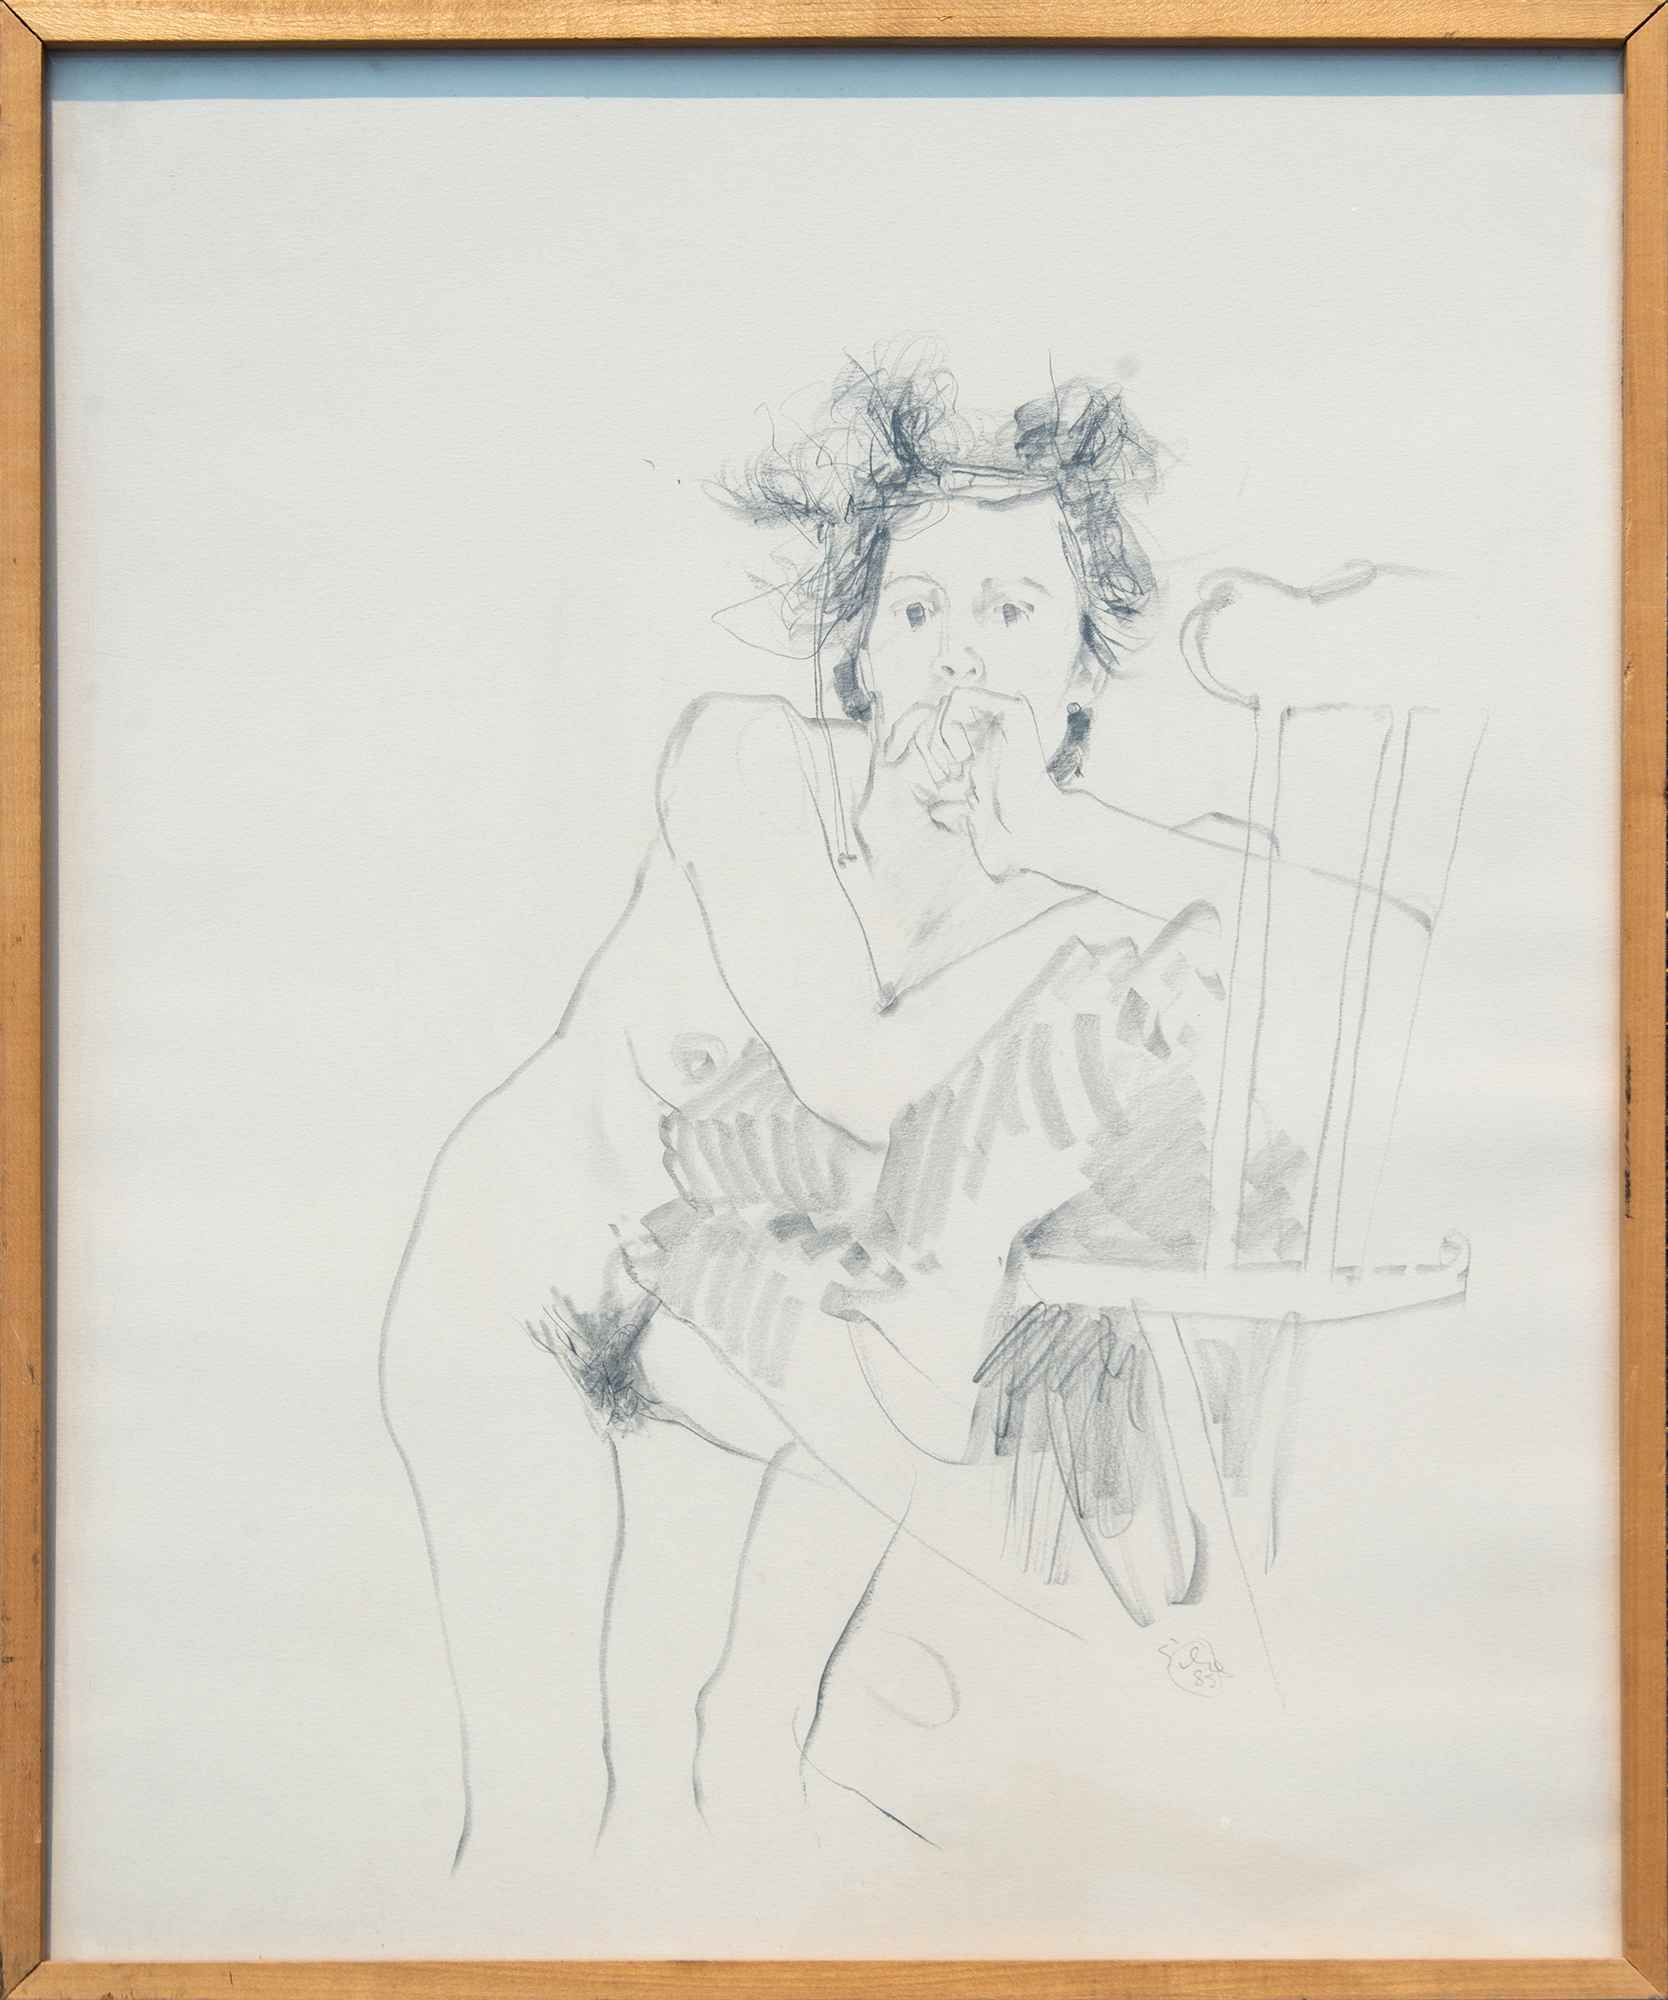 Untitled Nude, 1985